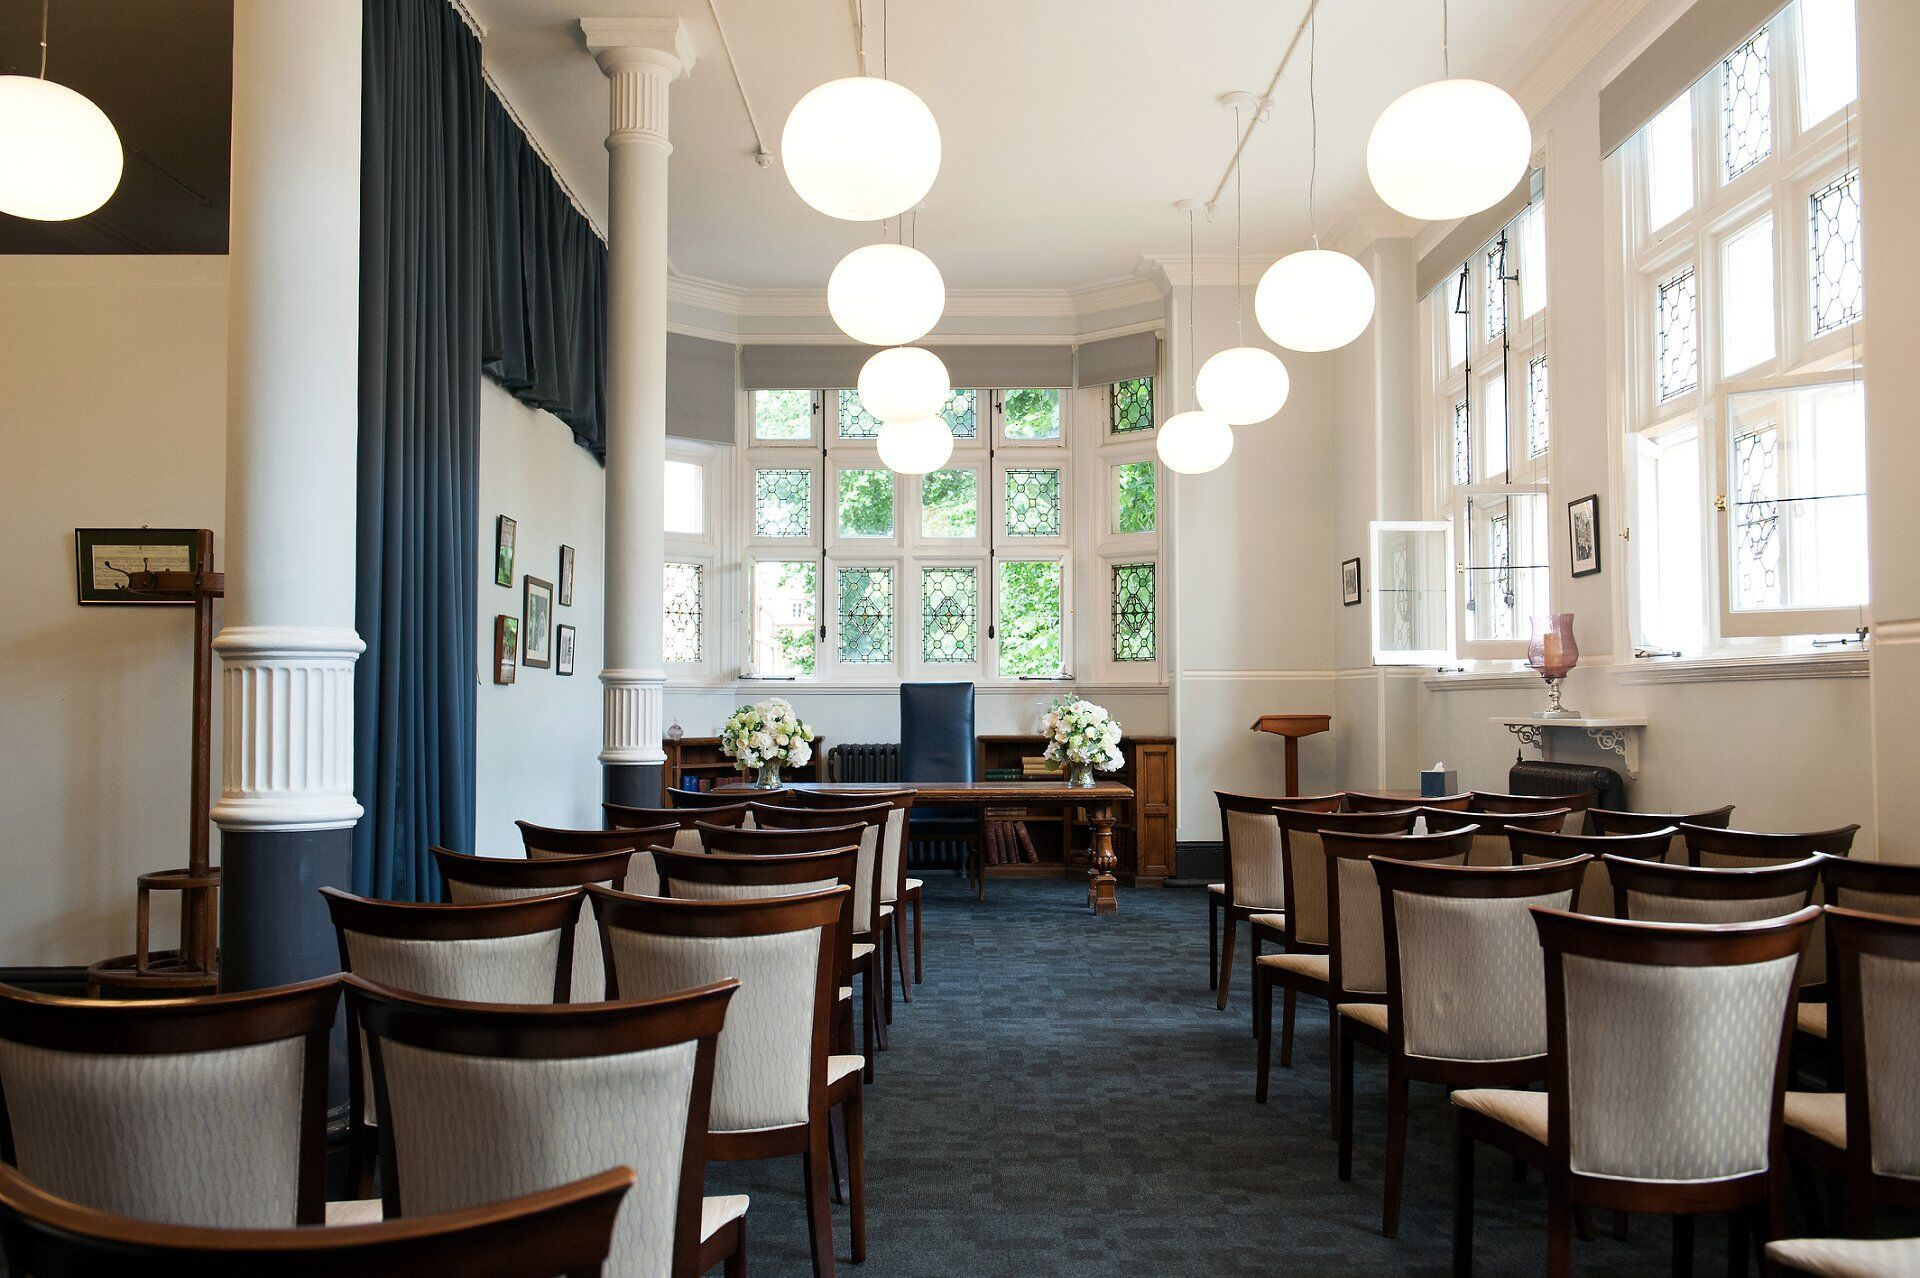 interior the mayfair room at mayfair library the larger of the two ceremony rooms at westminster register office by emma duggan phorography